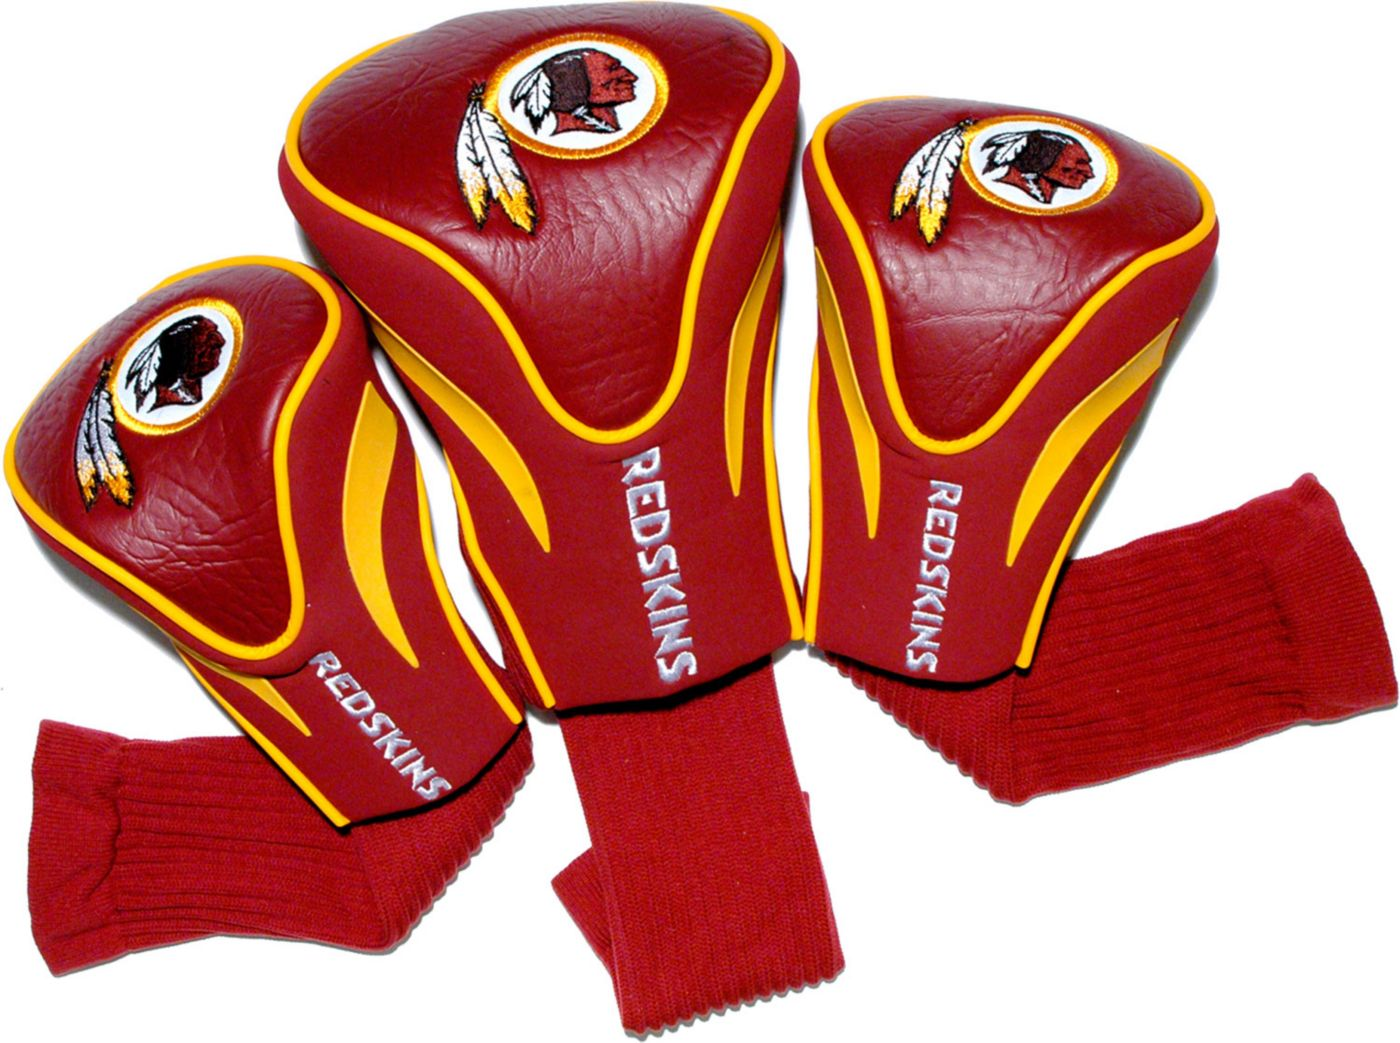 Team Golf Washington Redskins Contour Sock Headcovers - 3 Pack